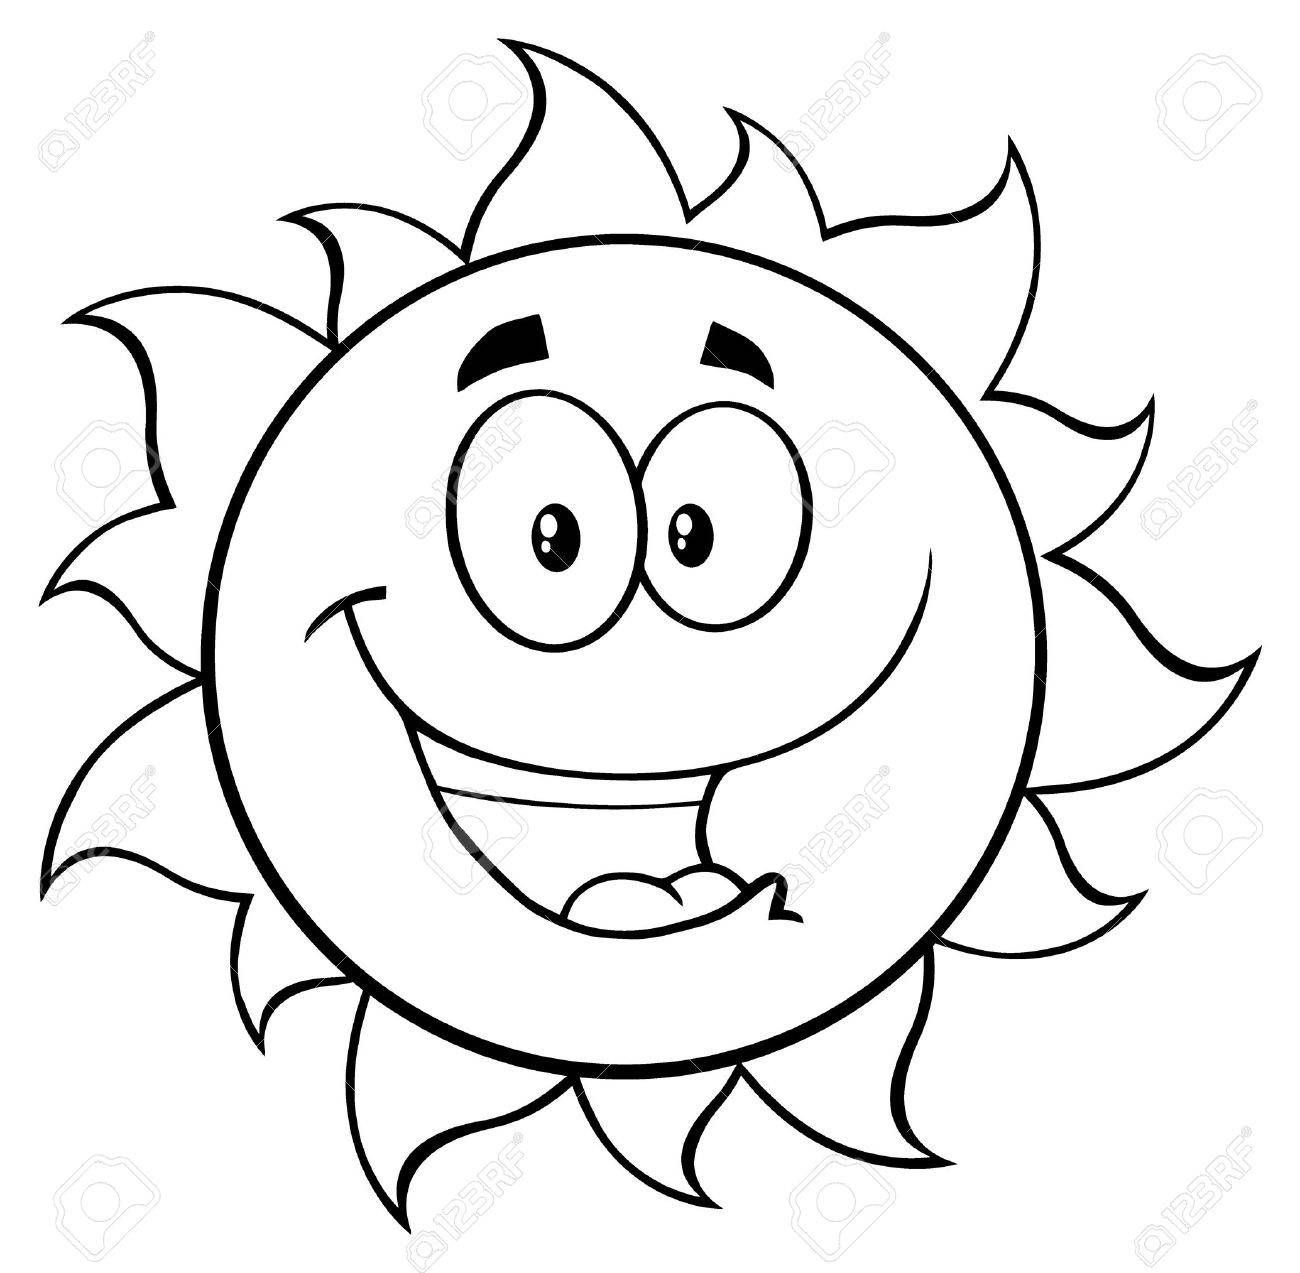 Cartoon Sun Drawing At Getdrawings